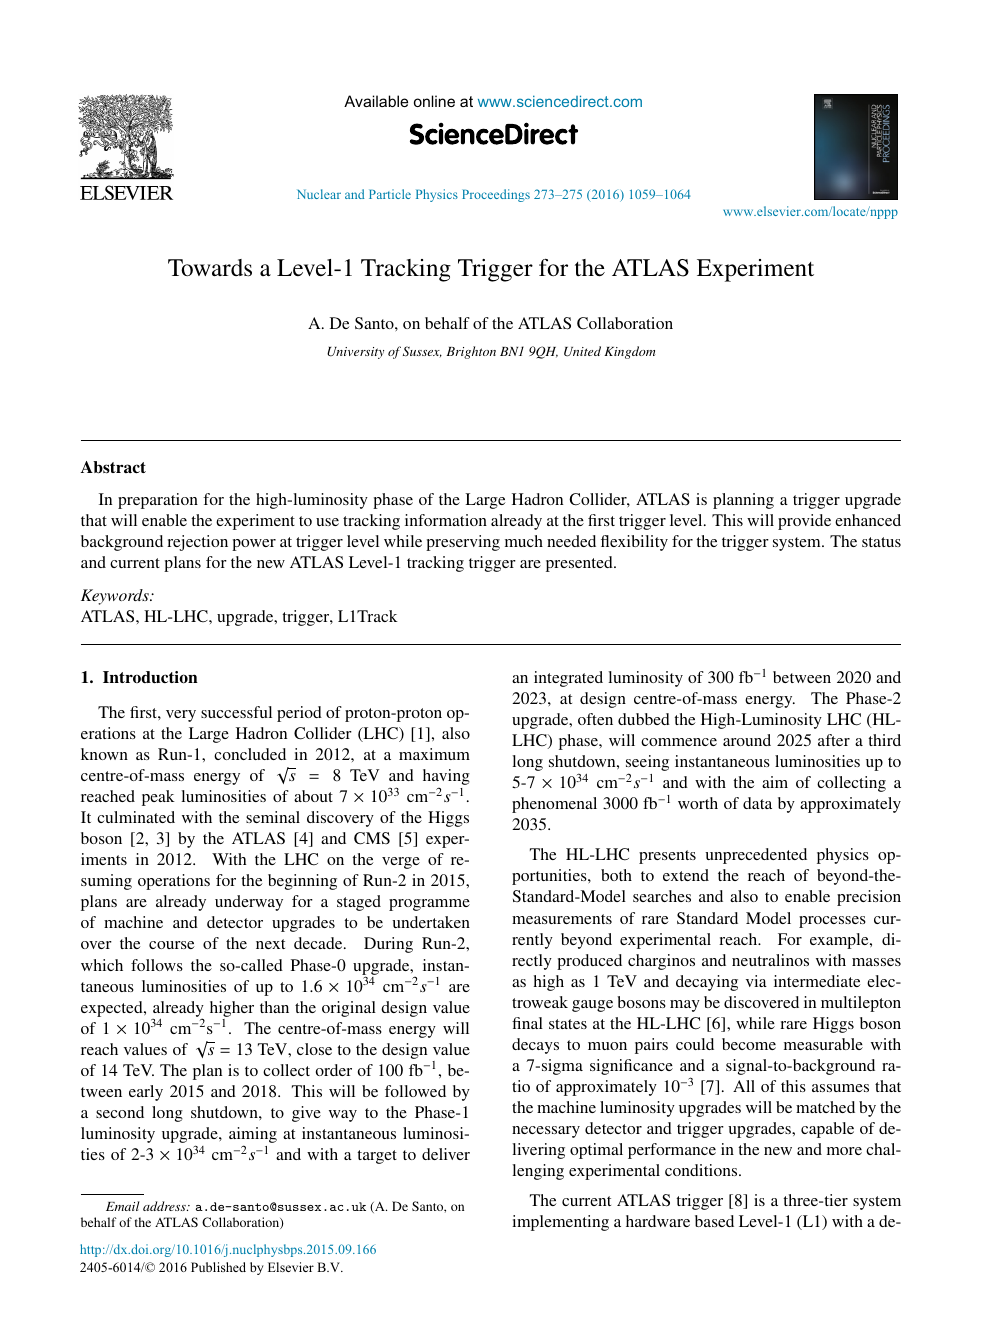 Towards a Level-1 Tracking Trigger for the ATLAS Experiment – topic